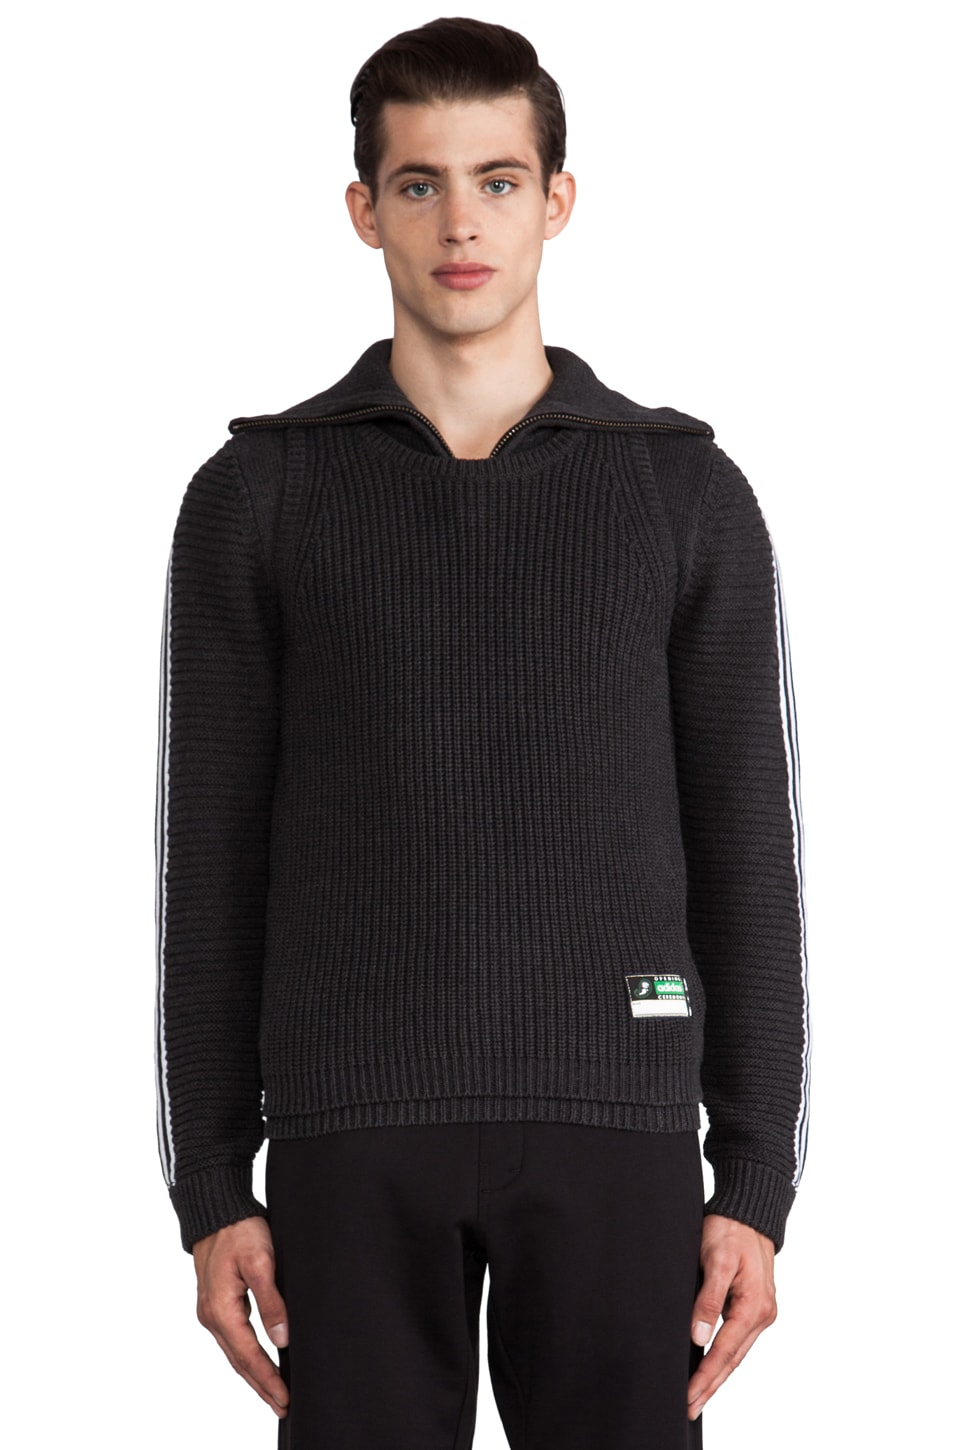 adidas Originals by Opening Ceremony Tank Sweater in SLVR Black Melange